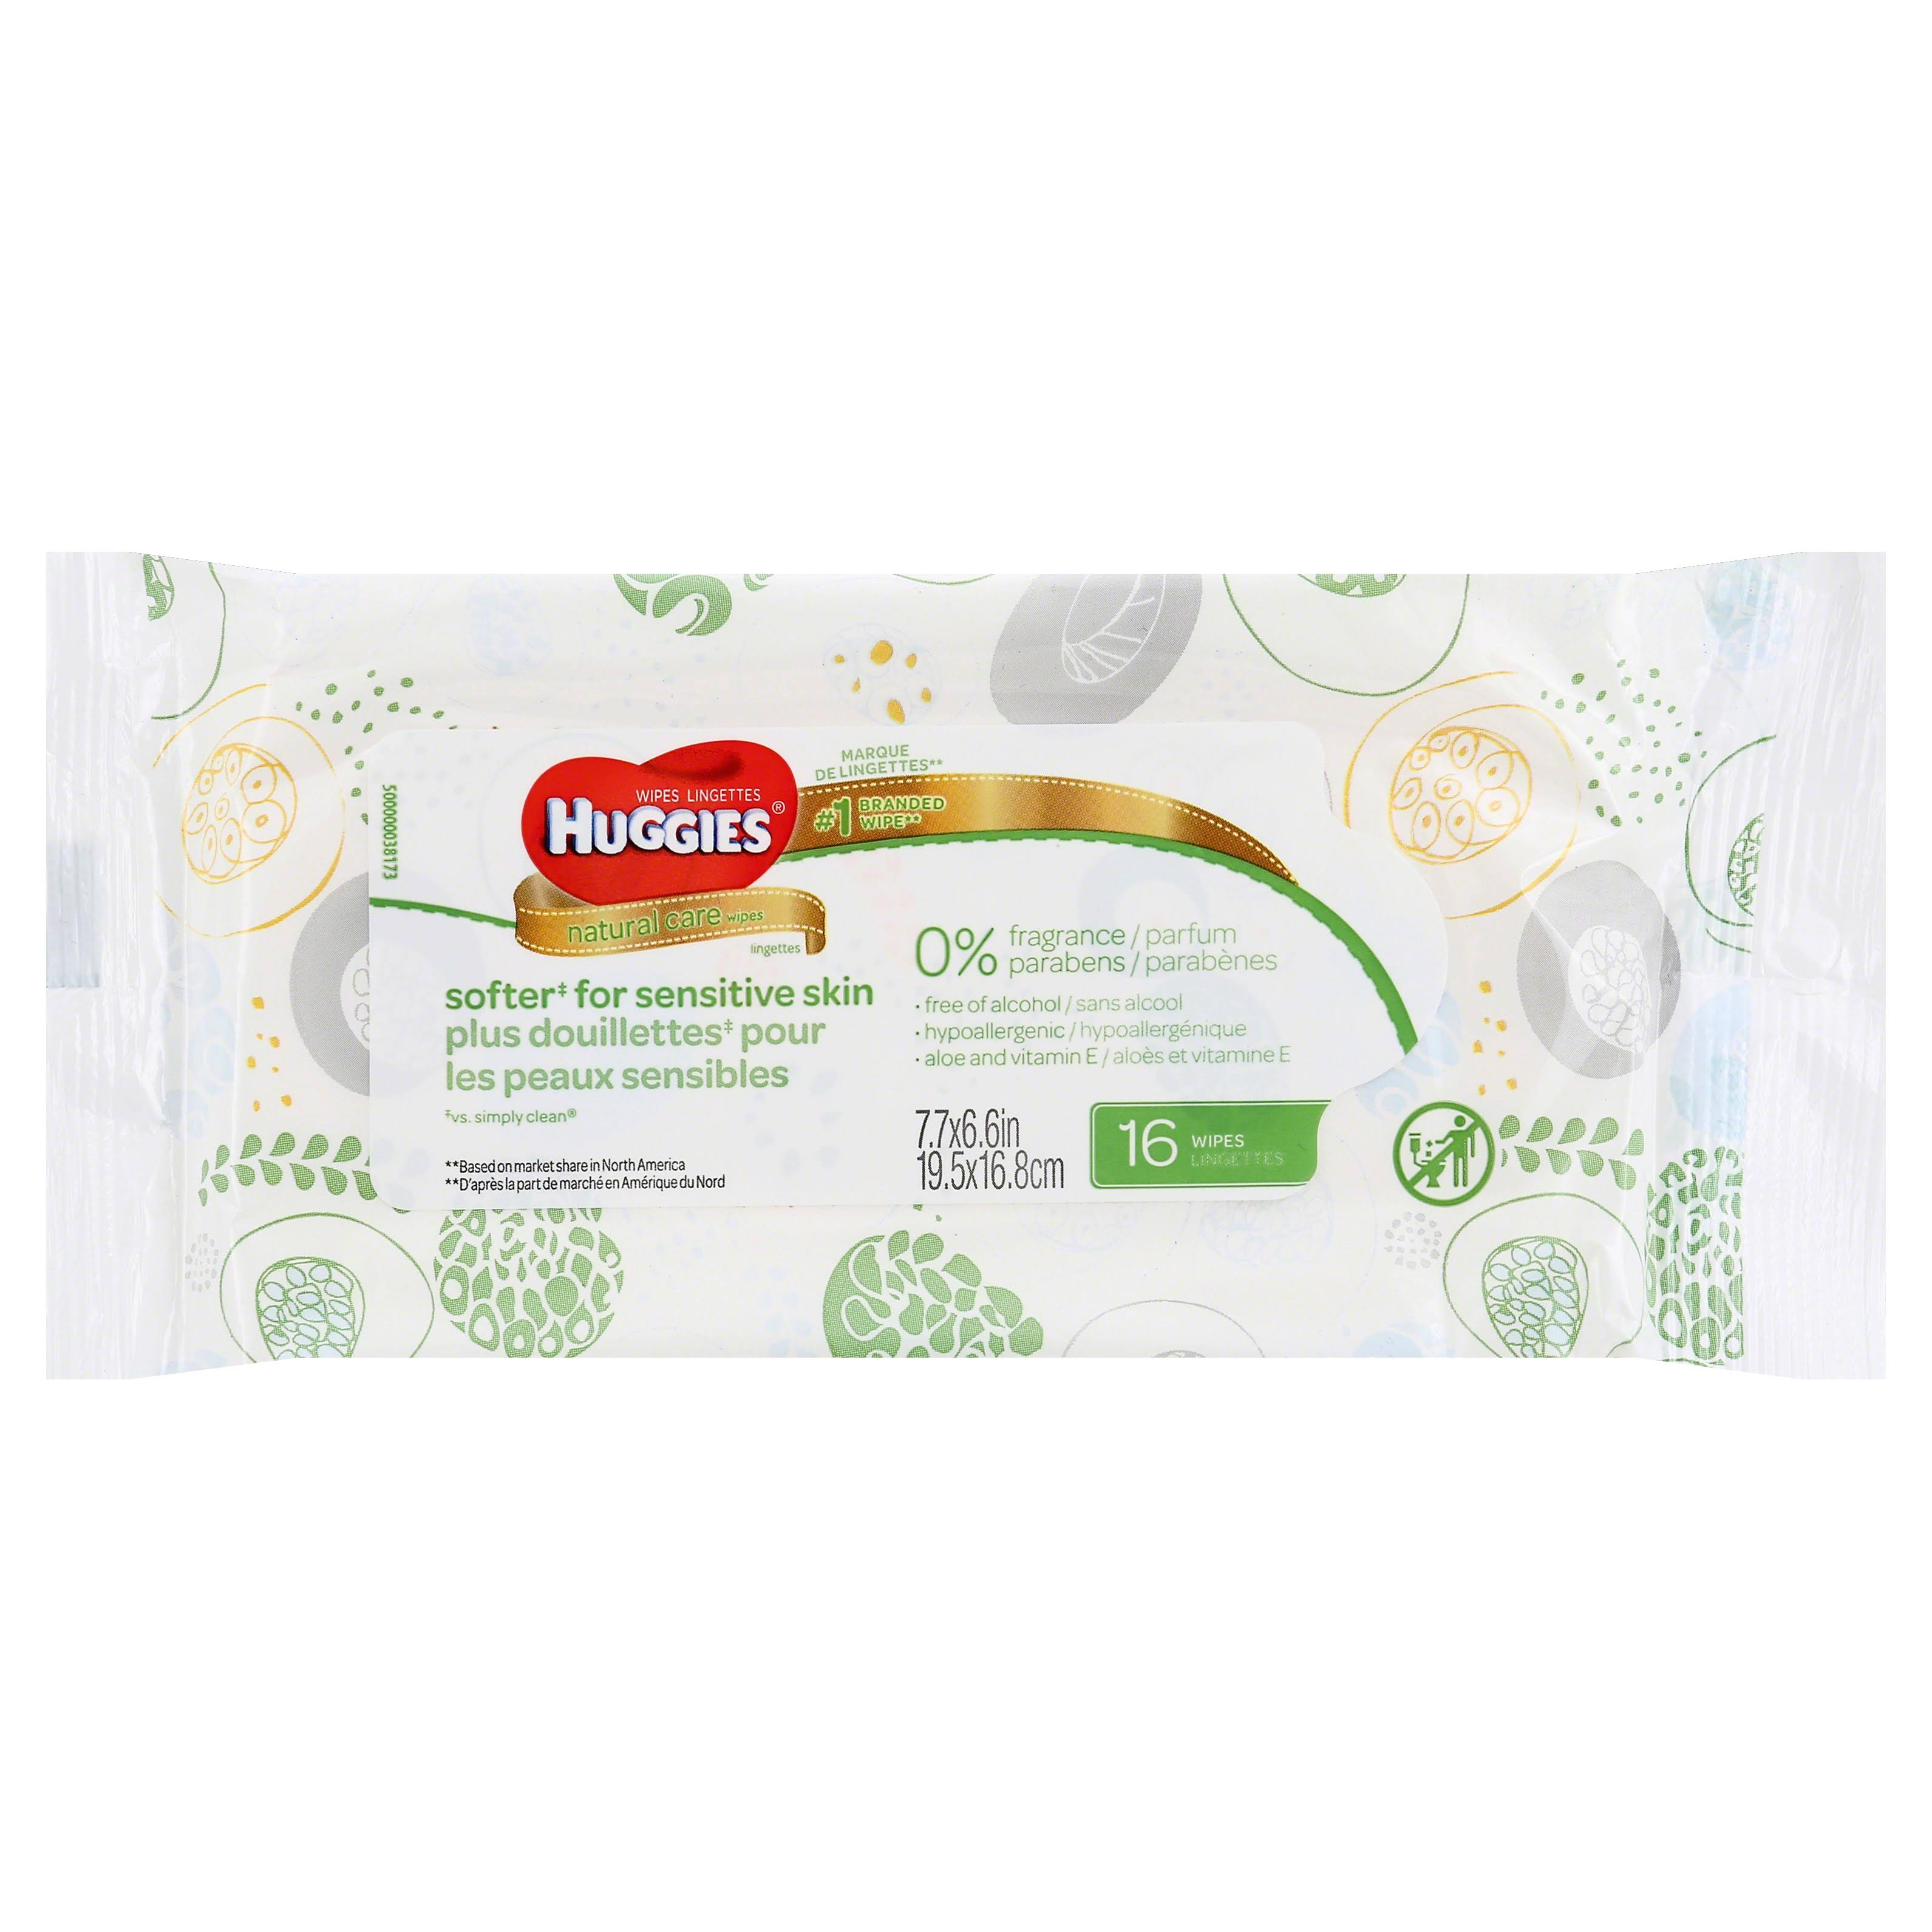 Huggies Natural Care Baby Wipes - Unscented, 16 Sheets